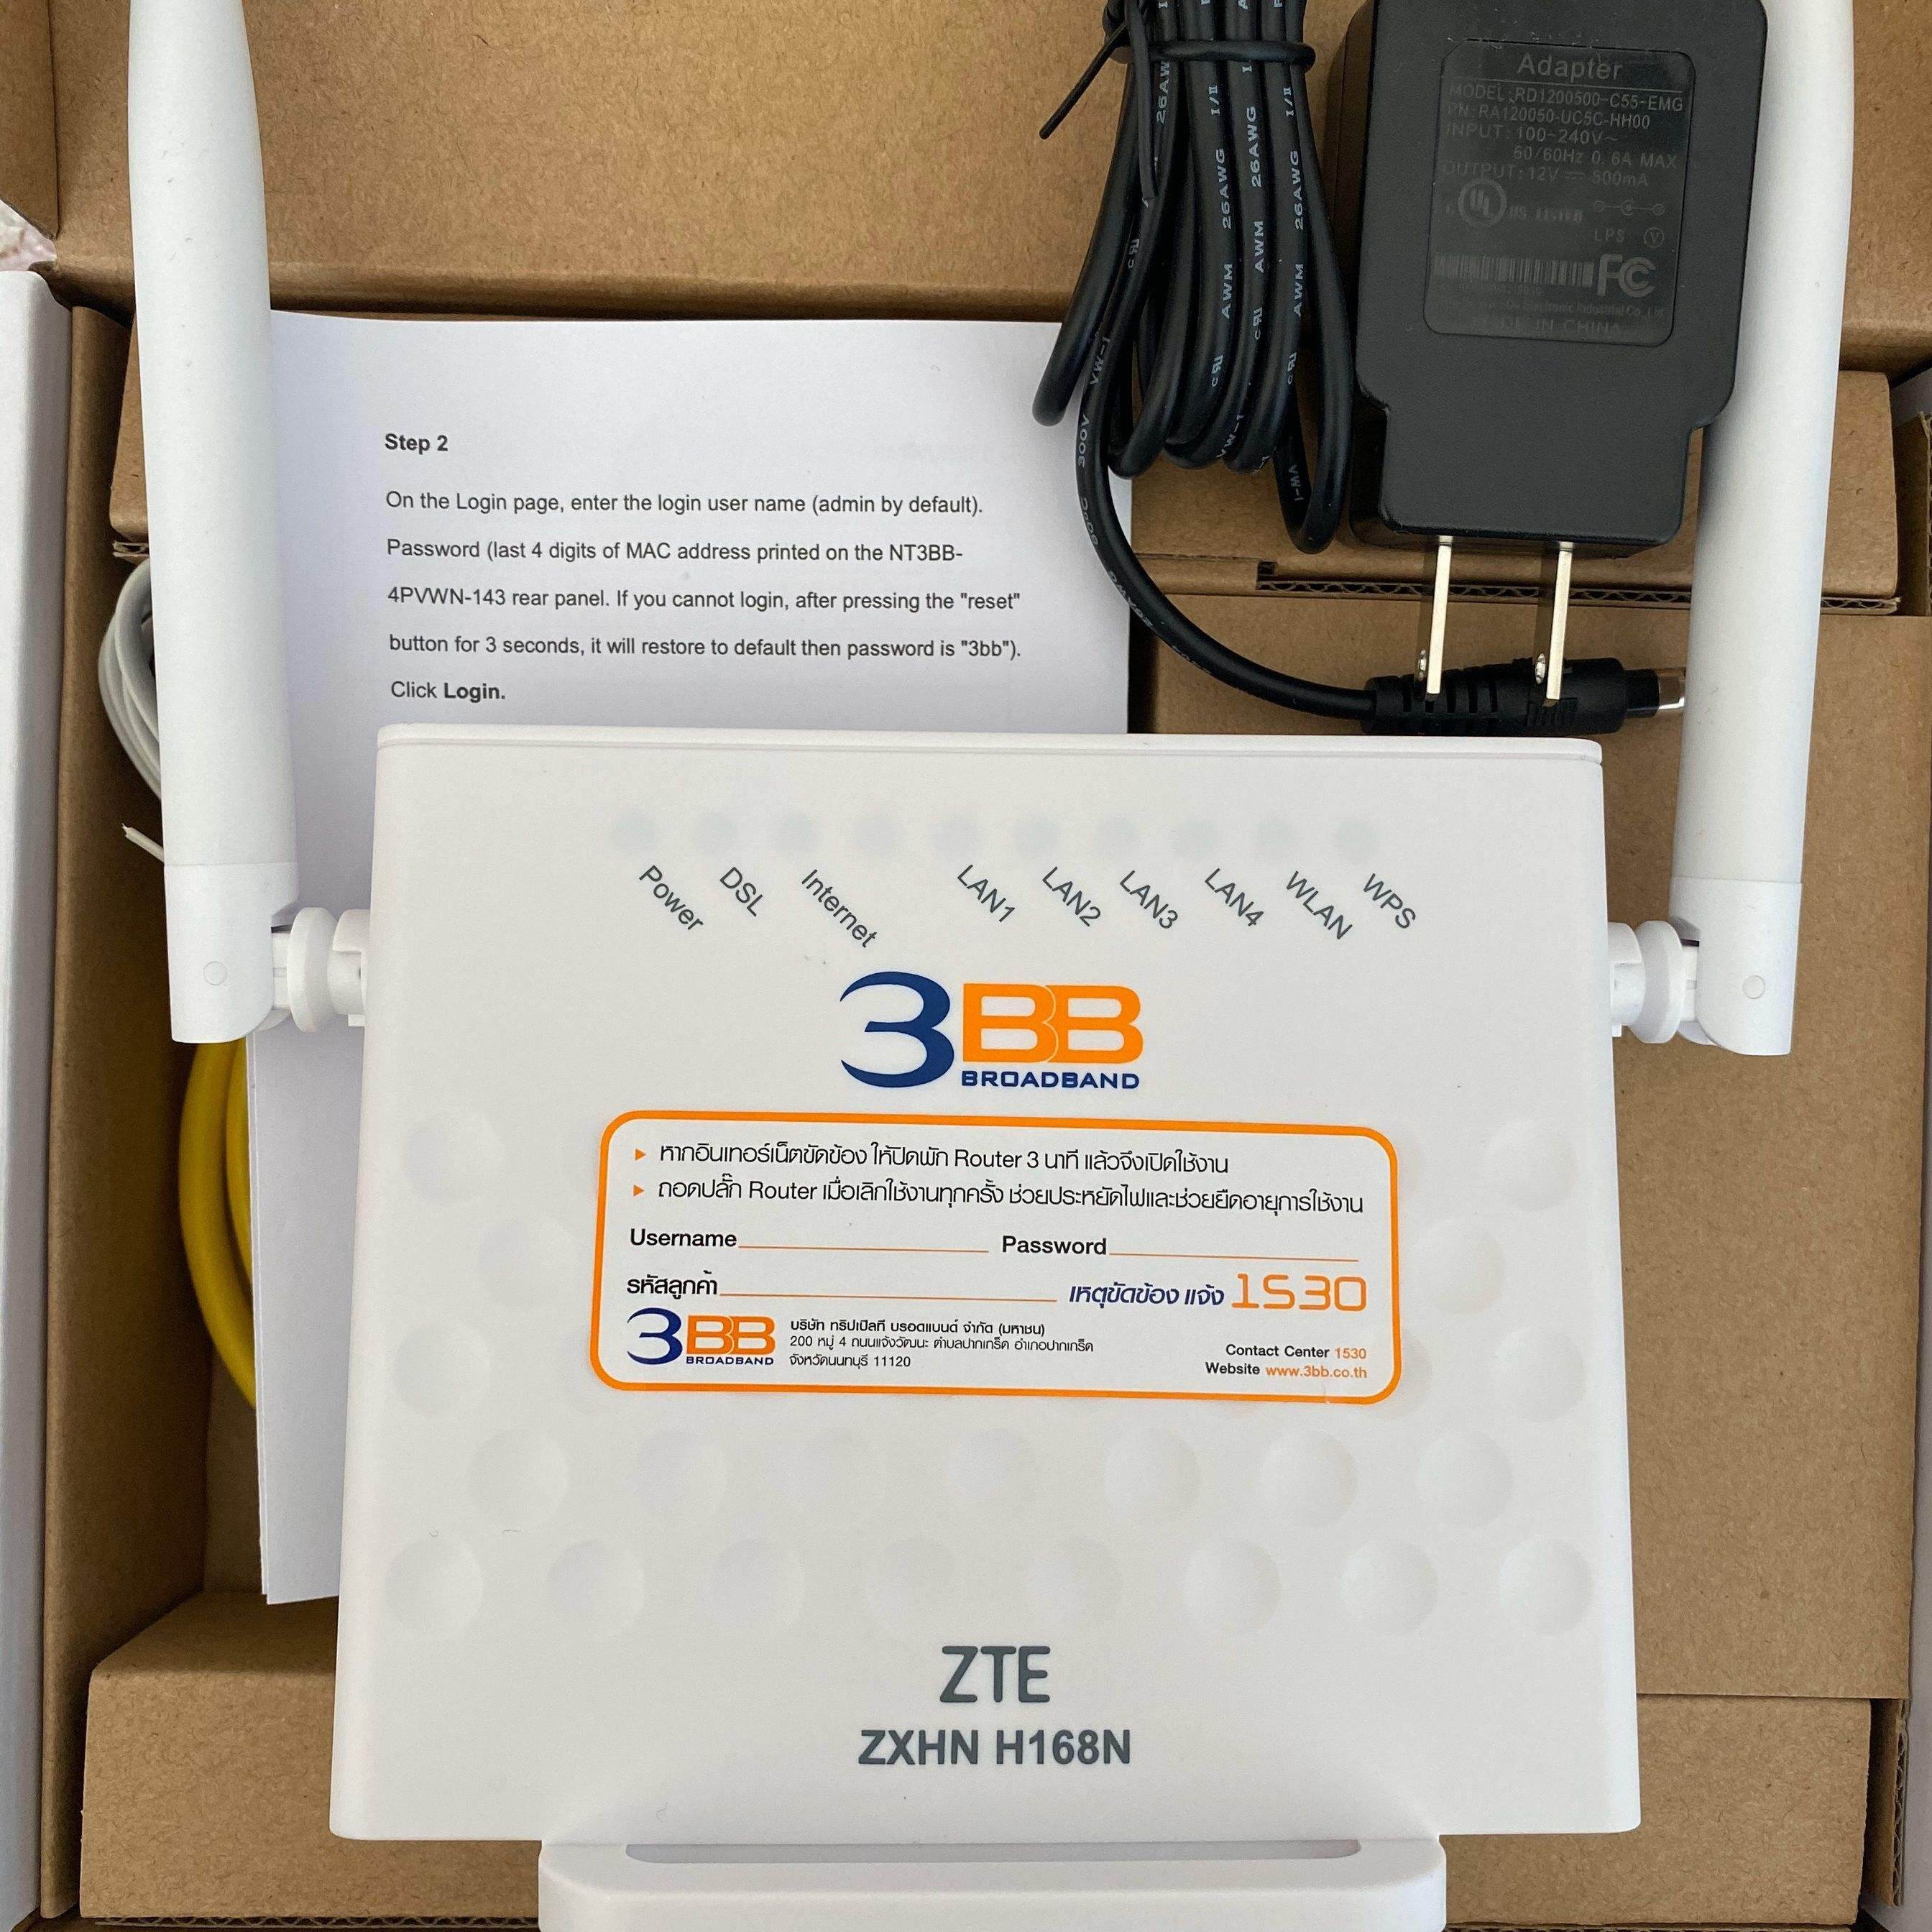 ZTE H168N ADSL Modem Wireless Router English Version 300M VDSL2/ADSL2 + Modem